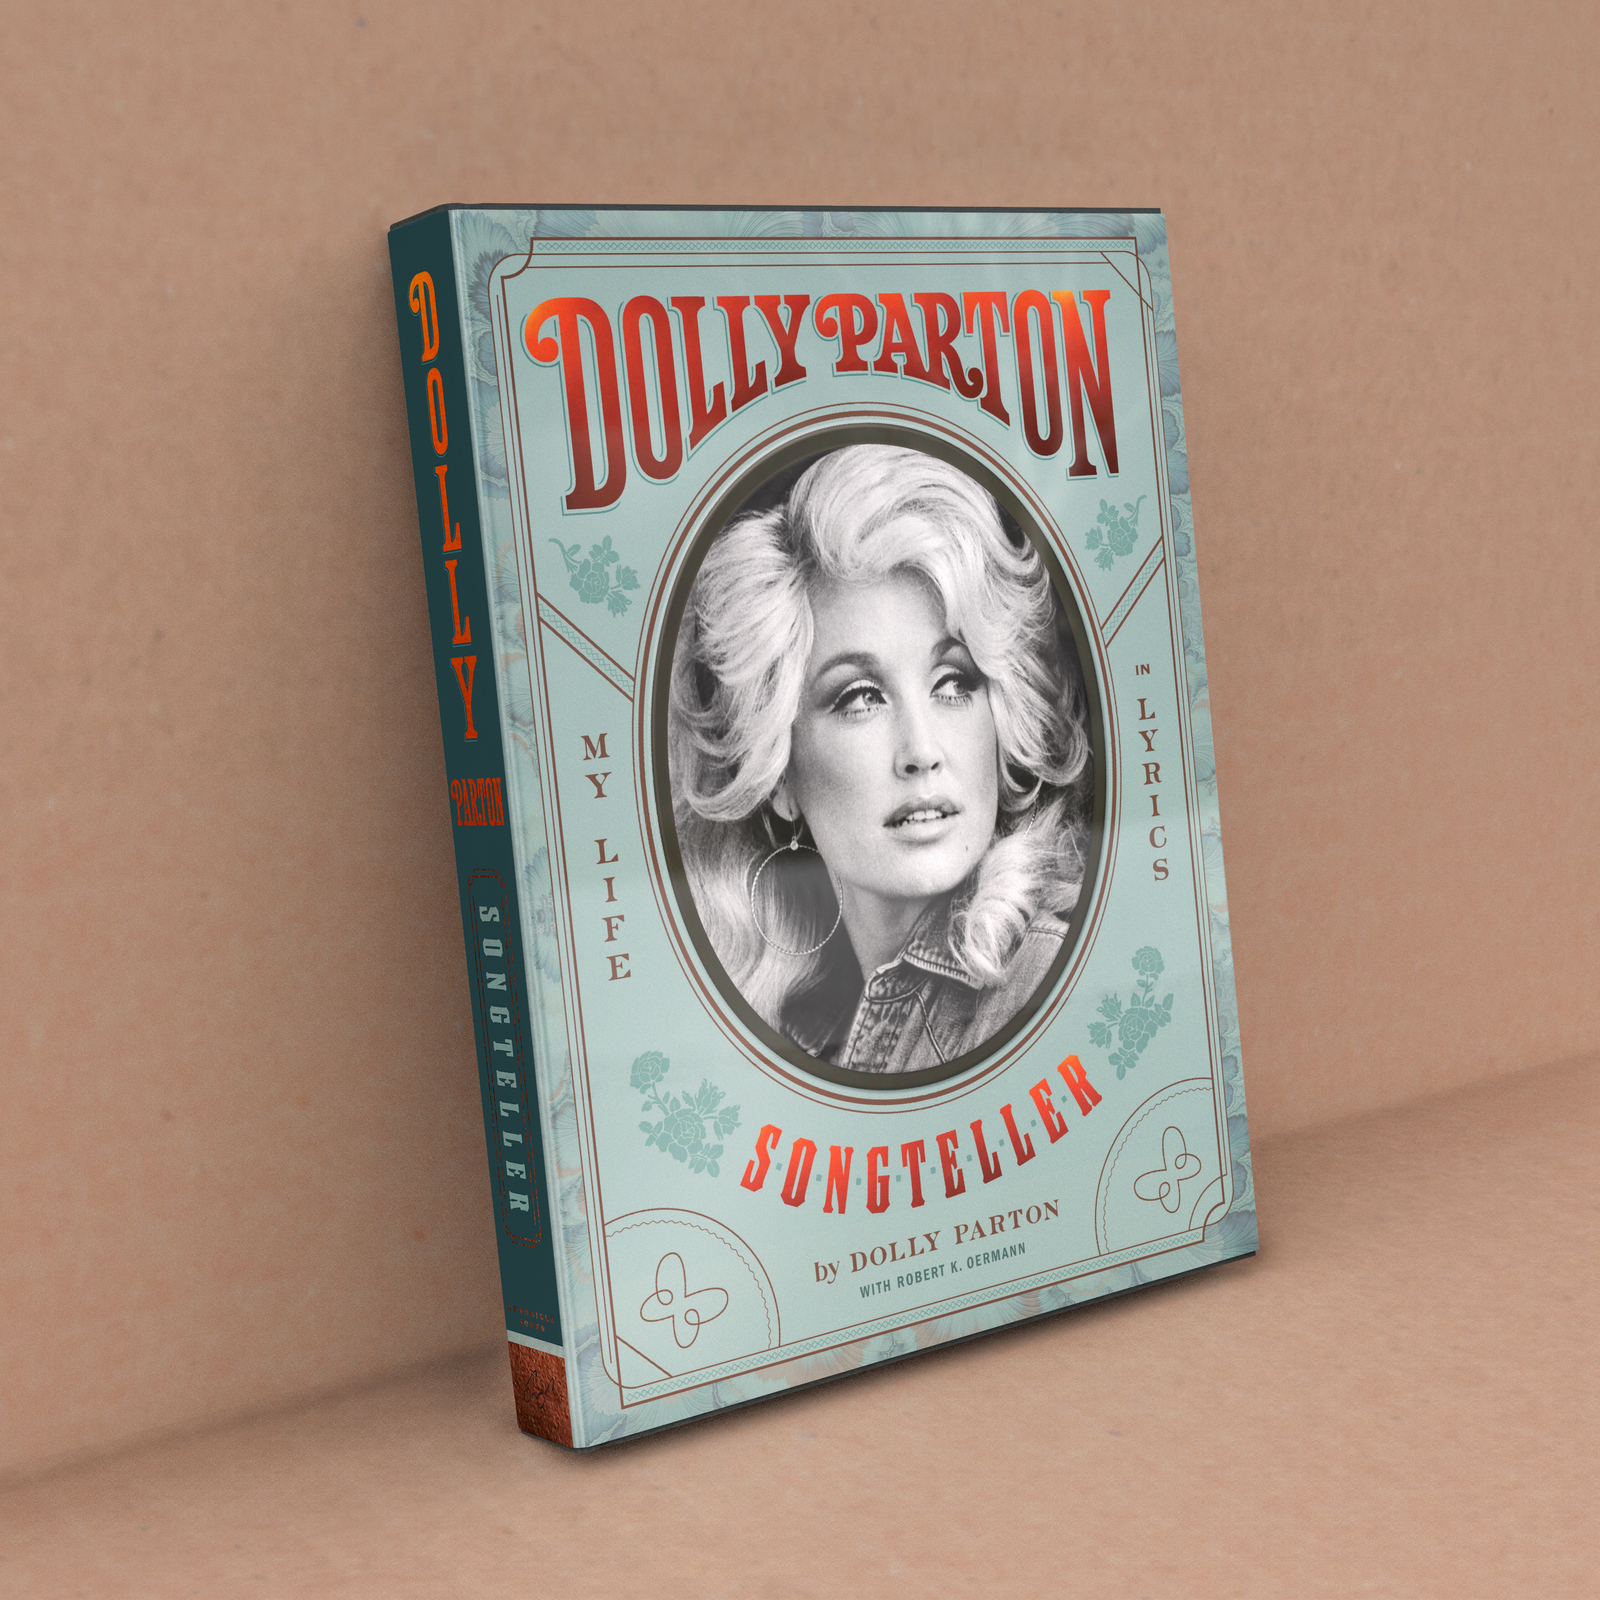 Dolly Parton Songteller My Life In Lyrics Dolly Parton Book In Stock Buy Now At Mighty Ape Australia